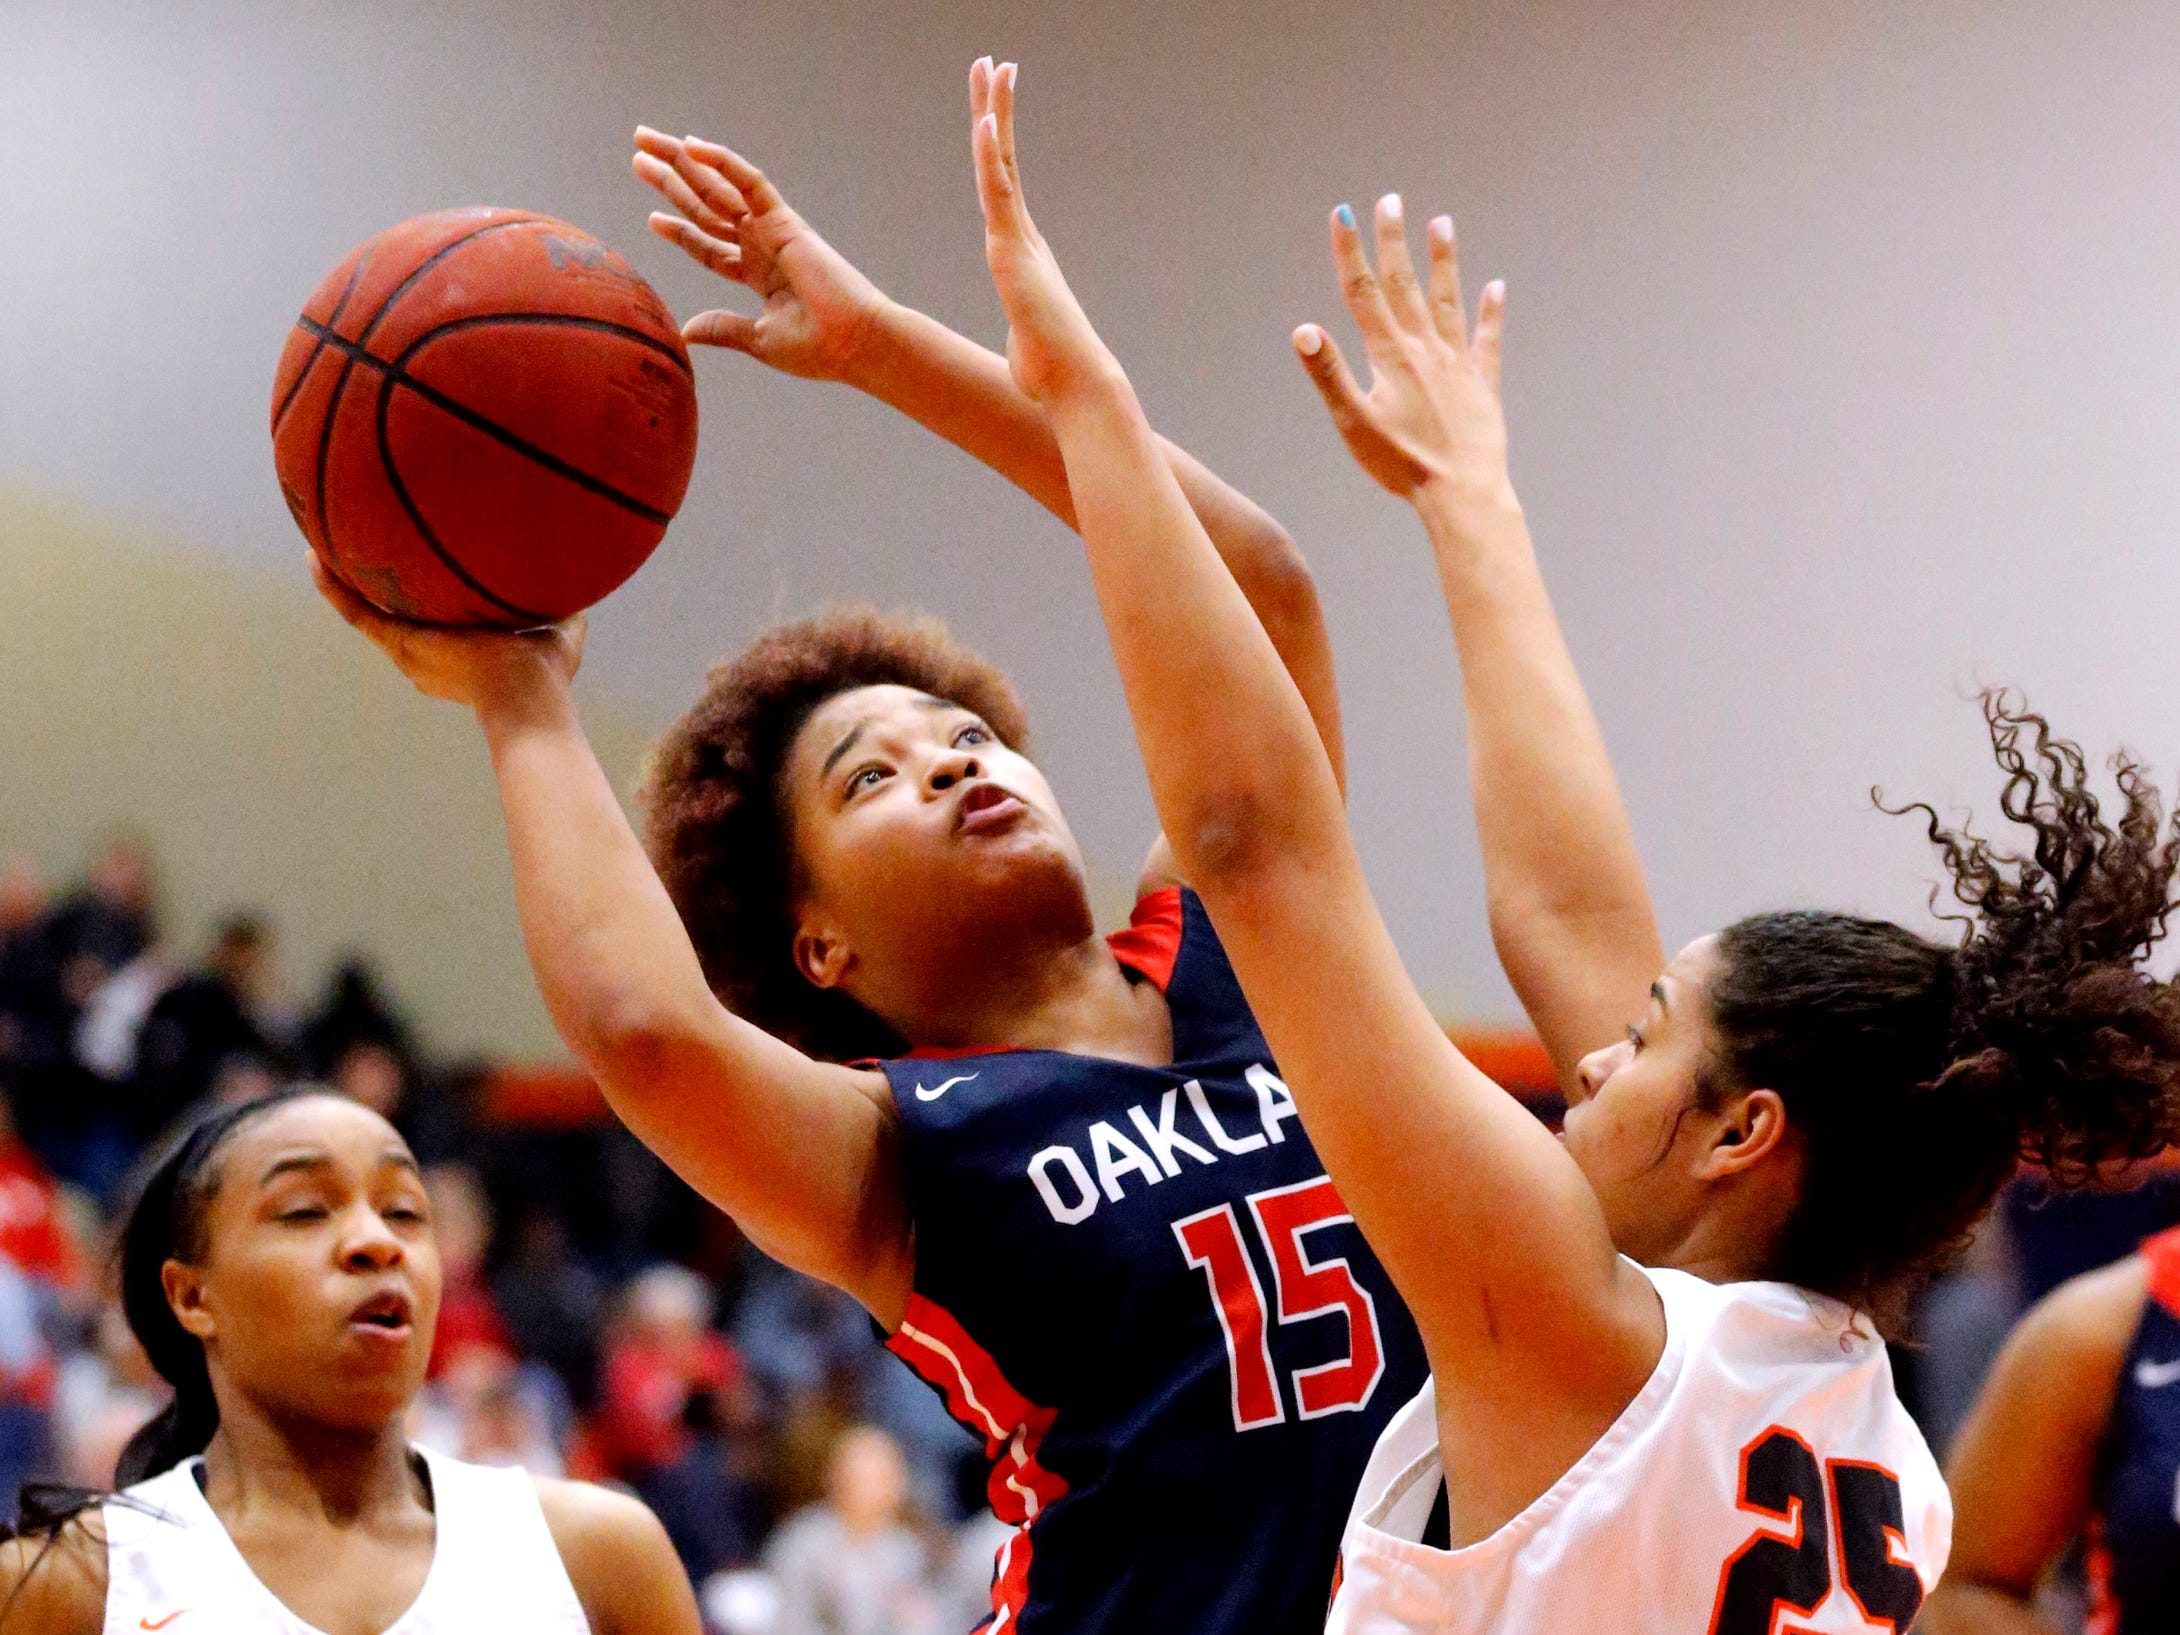 Oakland's Janiyah Riley (15) shoots the ball as Blackman's Aaliyah Green (25) defends her on Friday, Feb. 8, 2019.